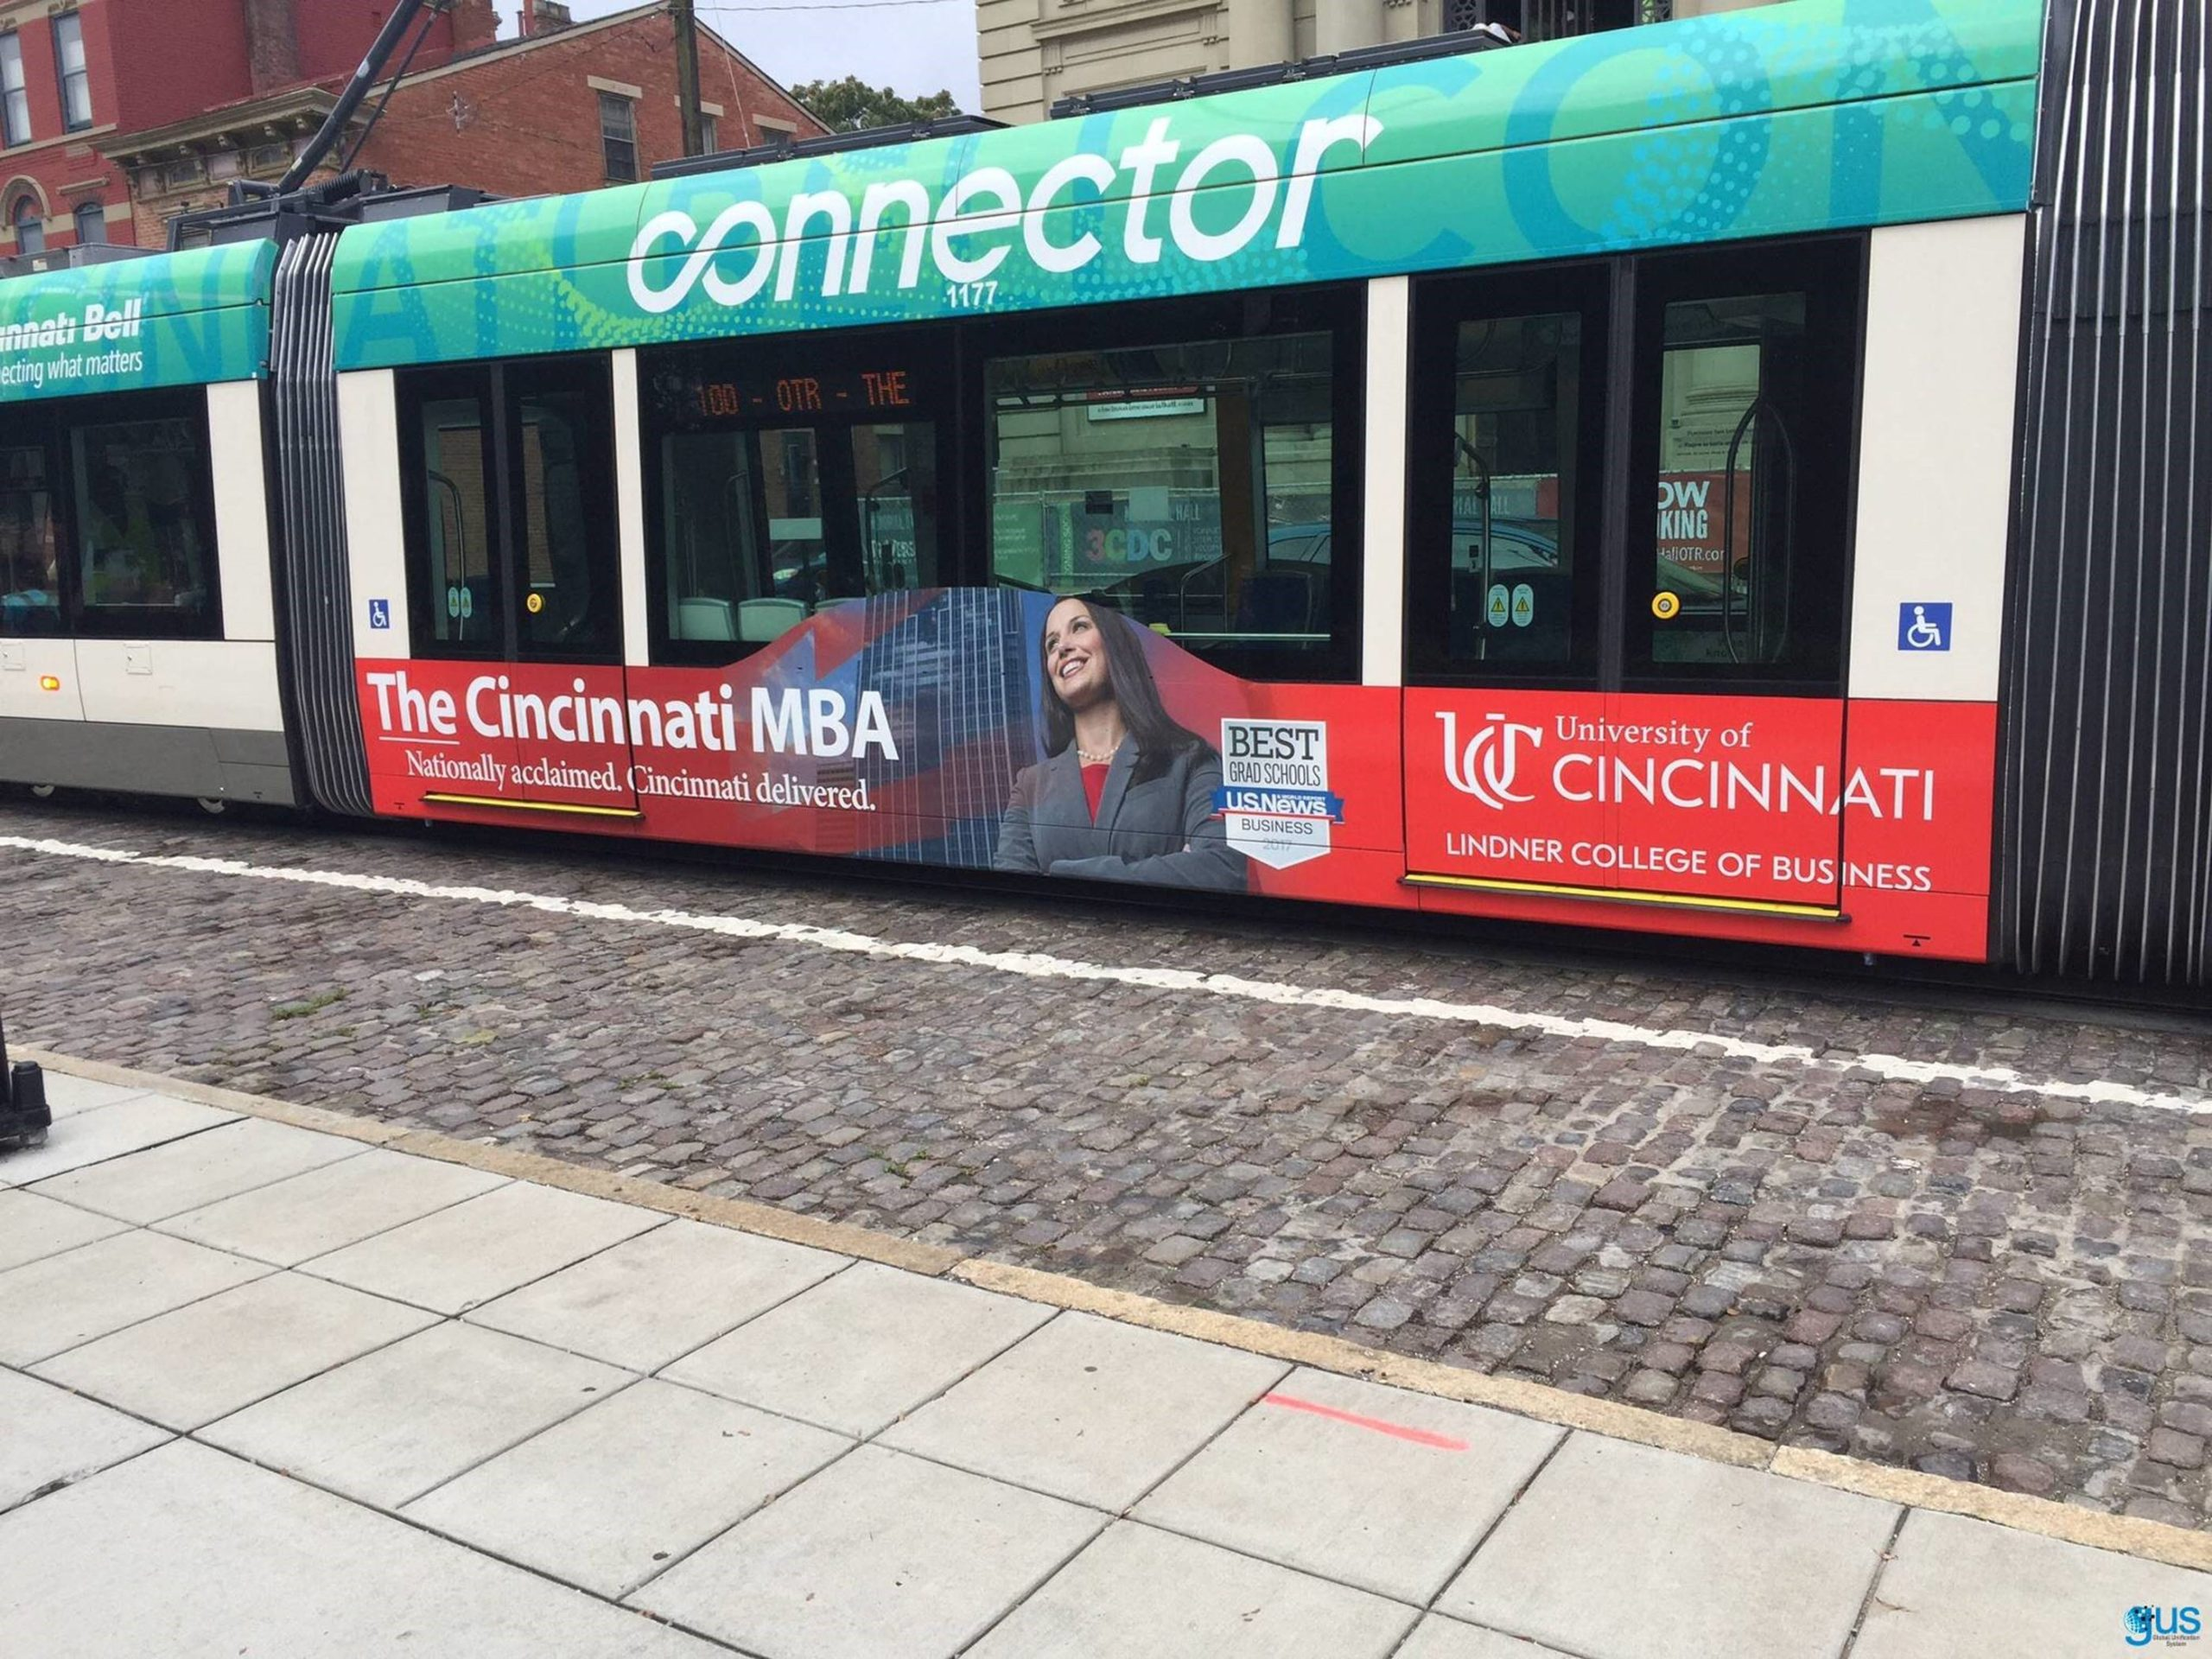 Cincinnati Connector